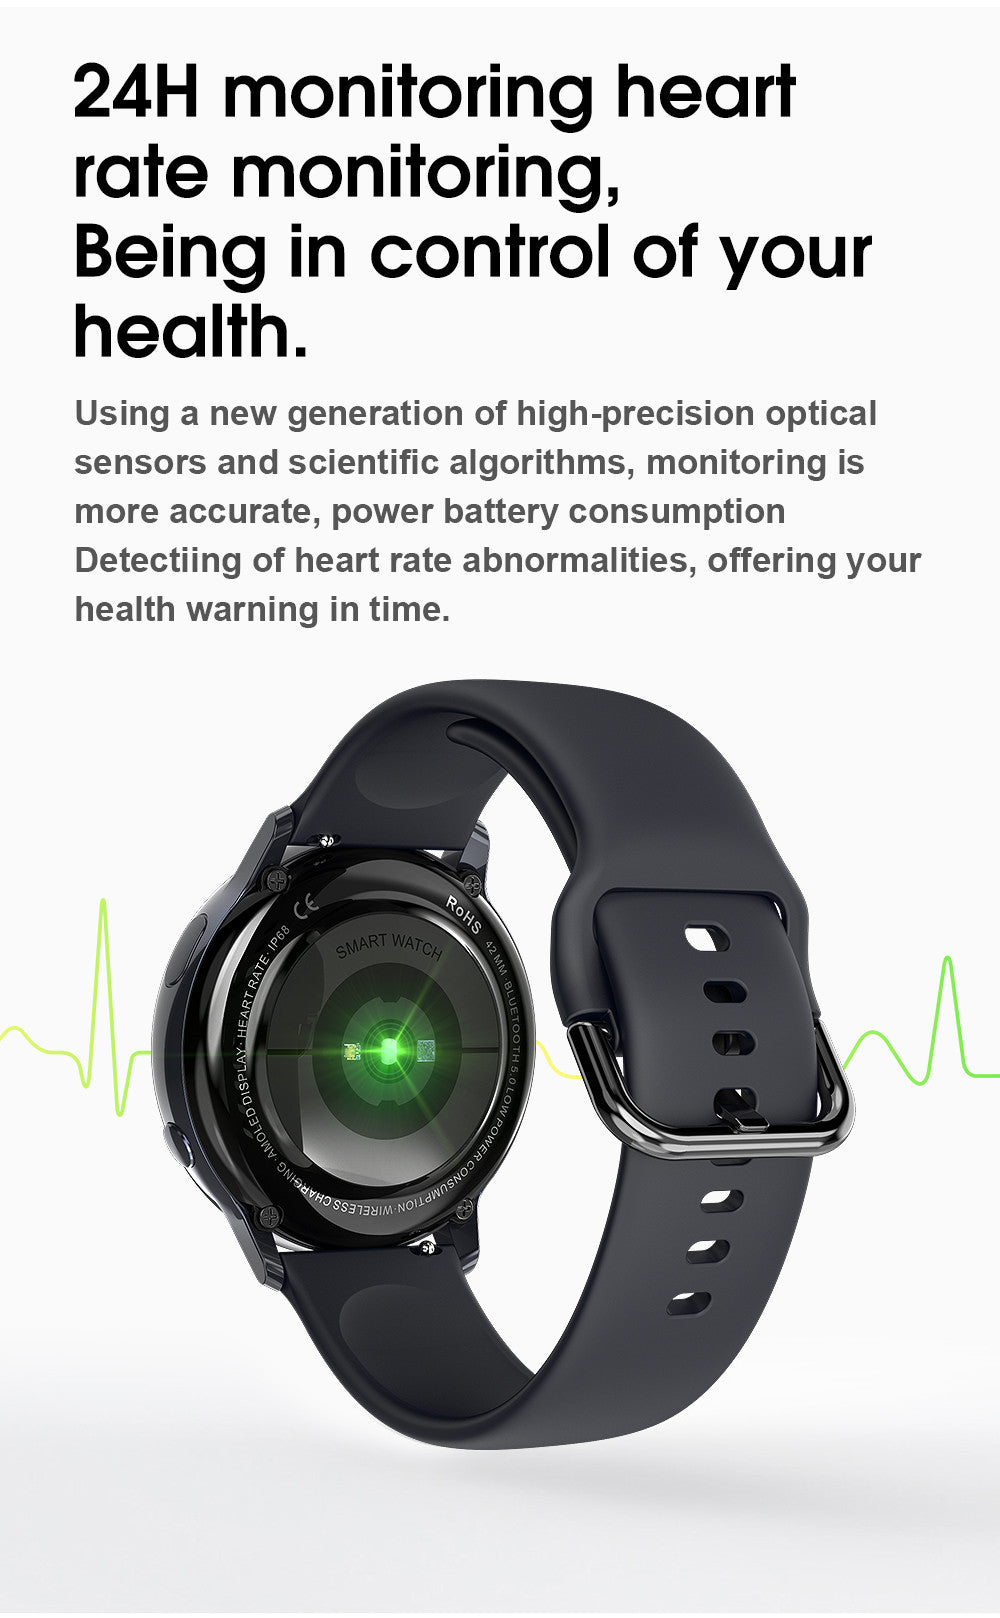 SG2 Smart Watch-detailed information12